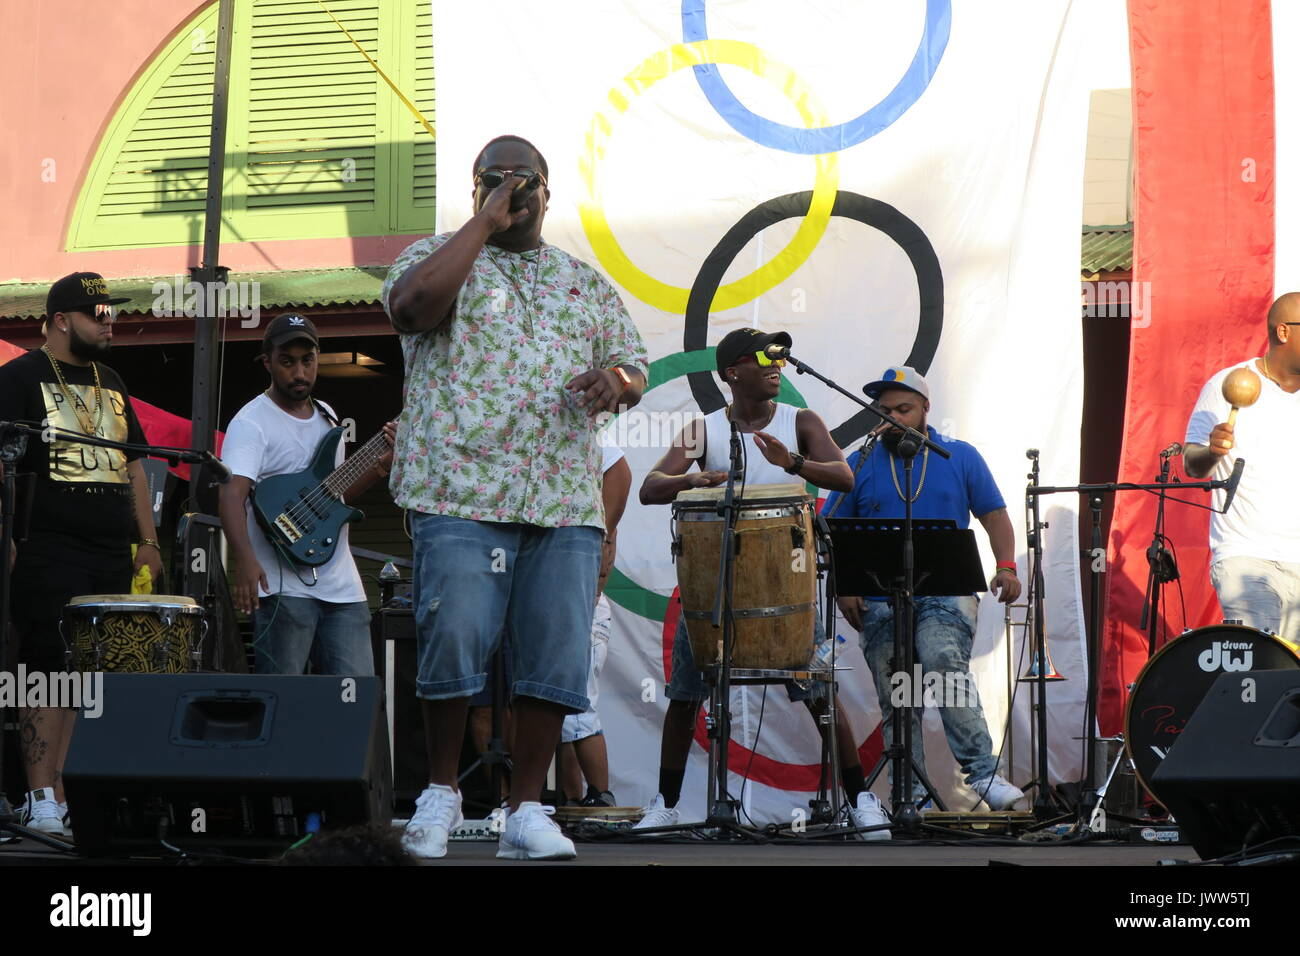 Hiram Abrante, leader of the music band La Tribu de Abrante, sings during the first anniversary of the olympic gold won by tennis player Monica Puig, at the Placita de Santurce in San Juan, Puerto Rico, 13 August 2017. Puig was the first gold olympic medalist of the island's history. EFE/Jorge Muniz - Stock Image